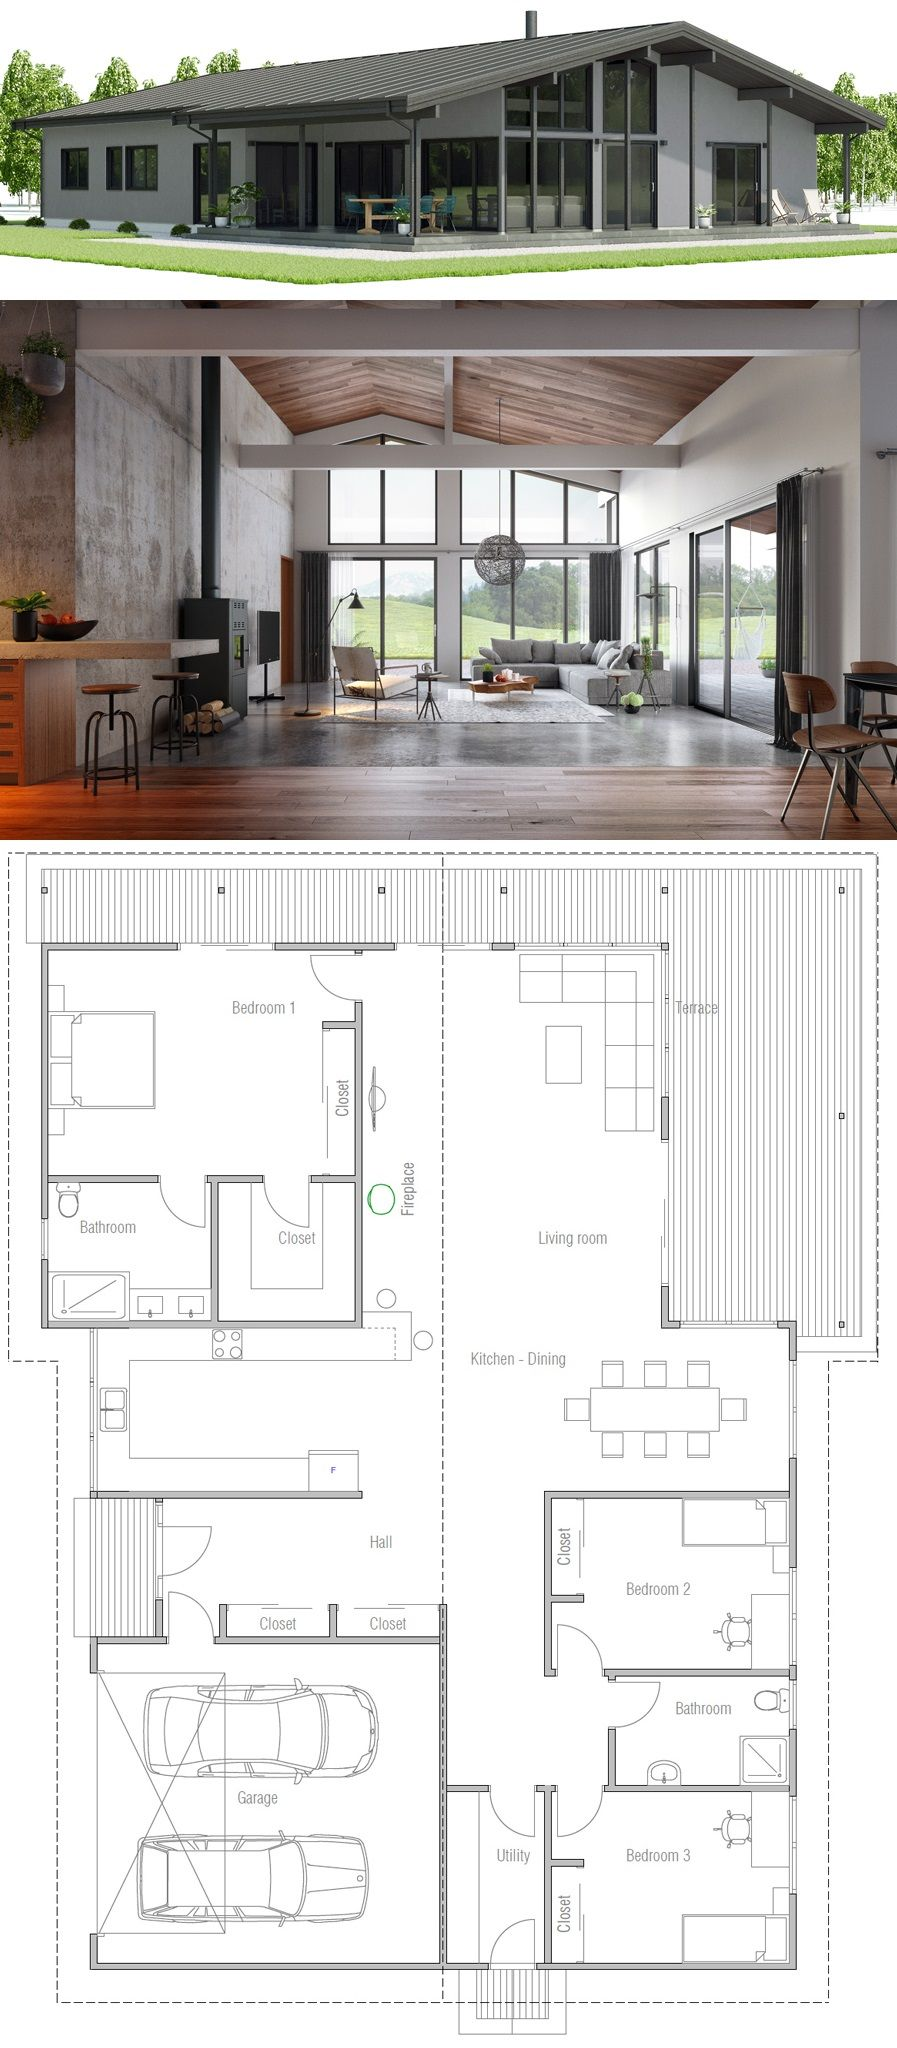 House Plan 2018 Home Plans 2018 Residential Architecture Plan Small House Plans Residential Architecture